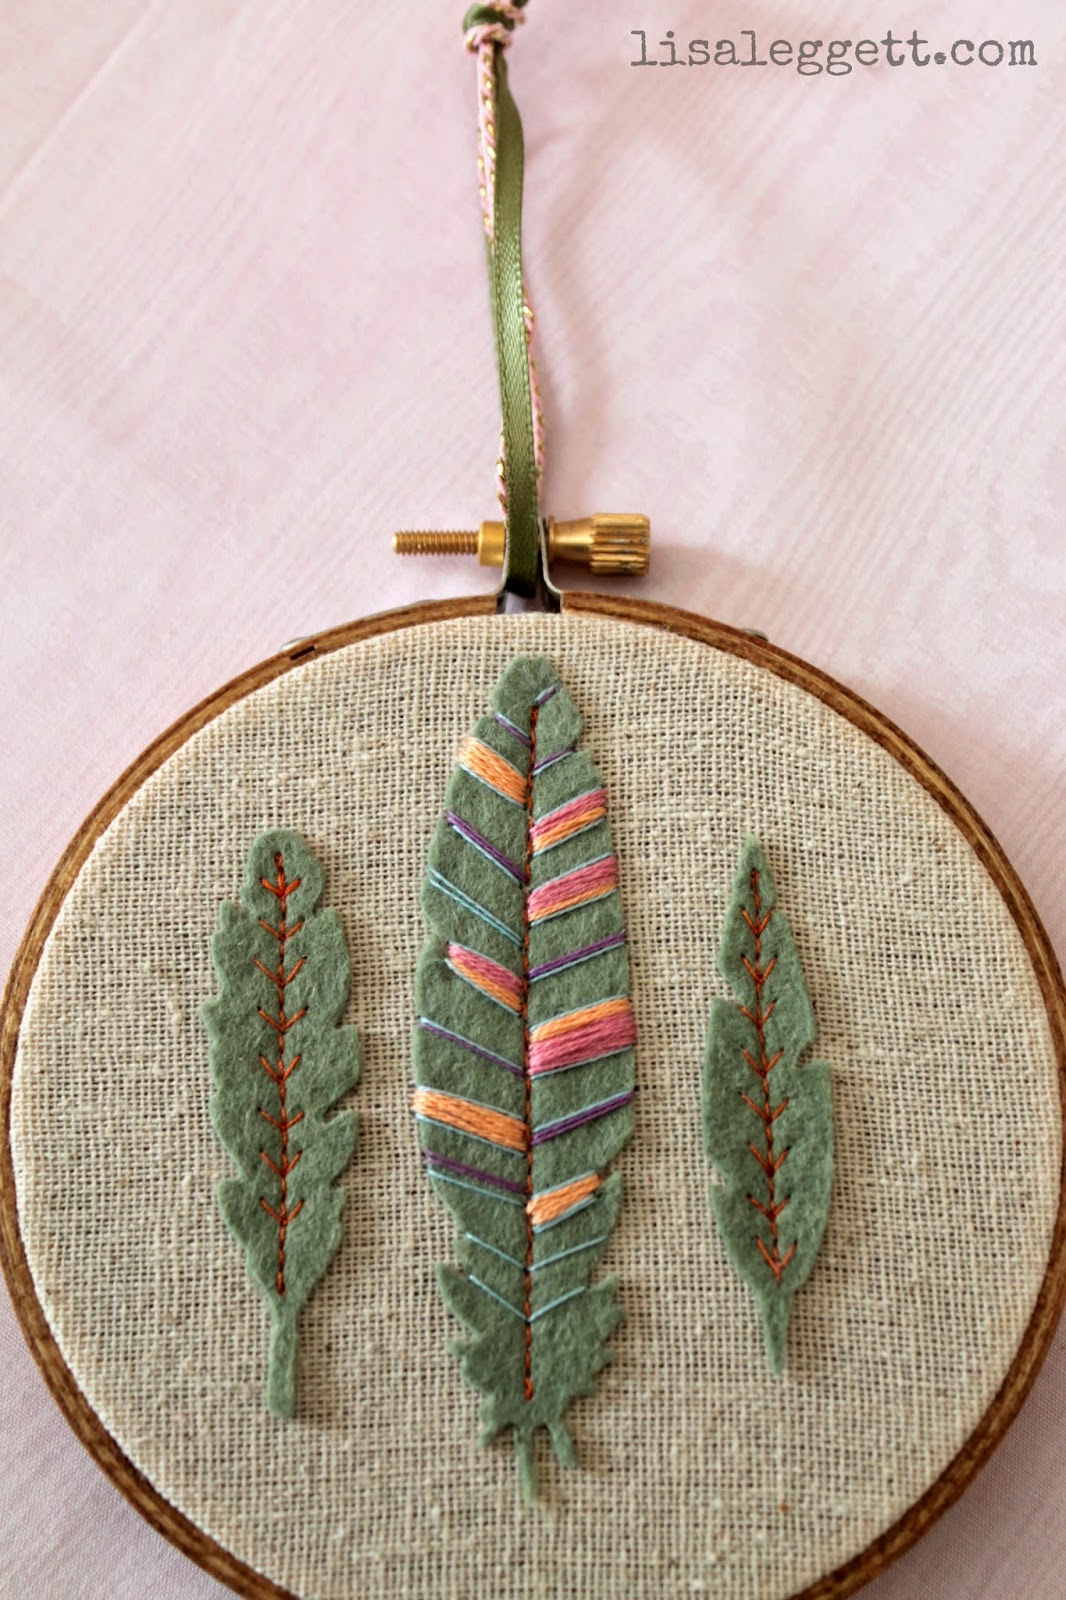 Embroidered Feather's by Lisa Leggett